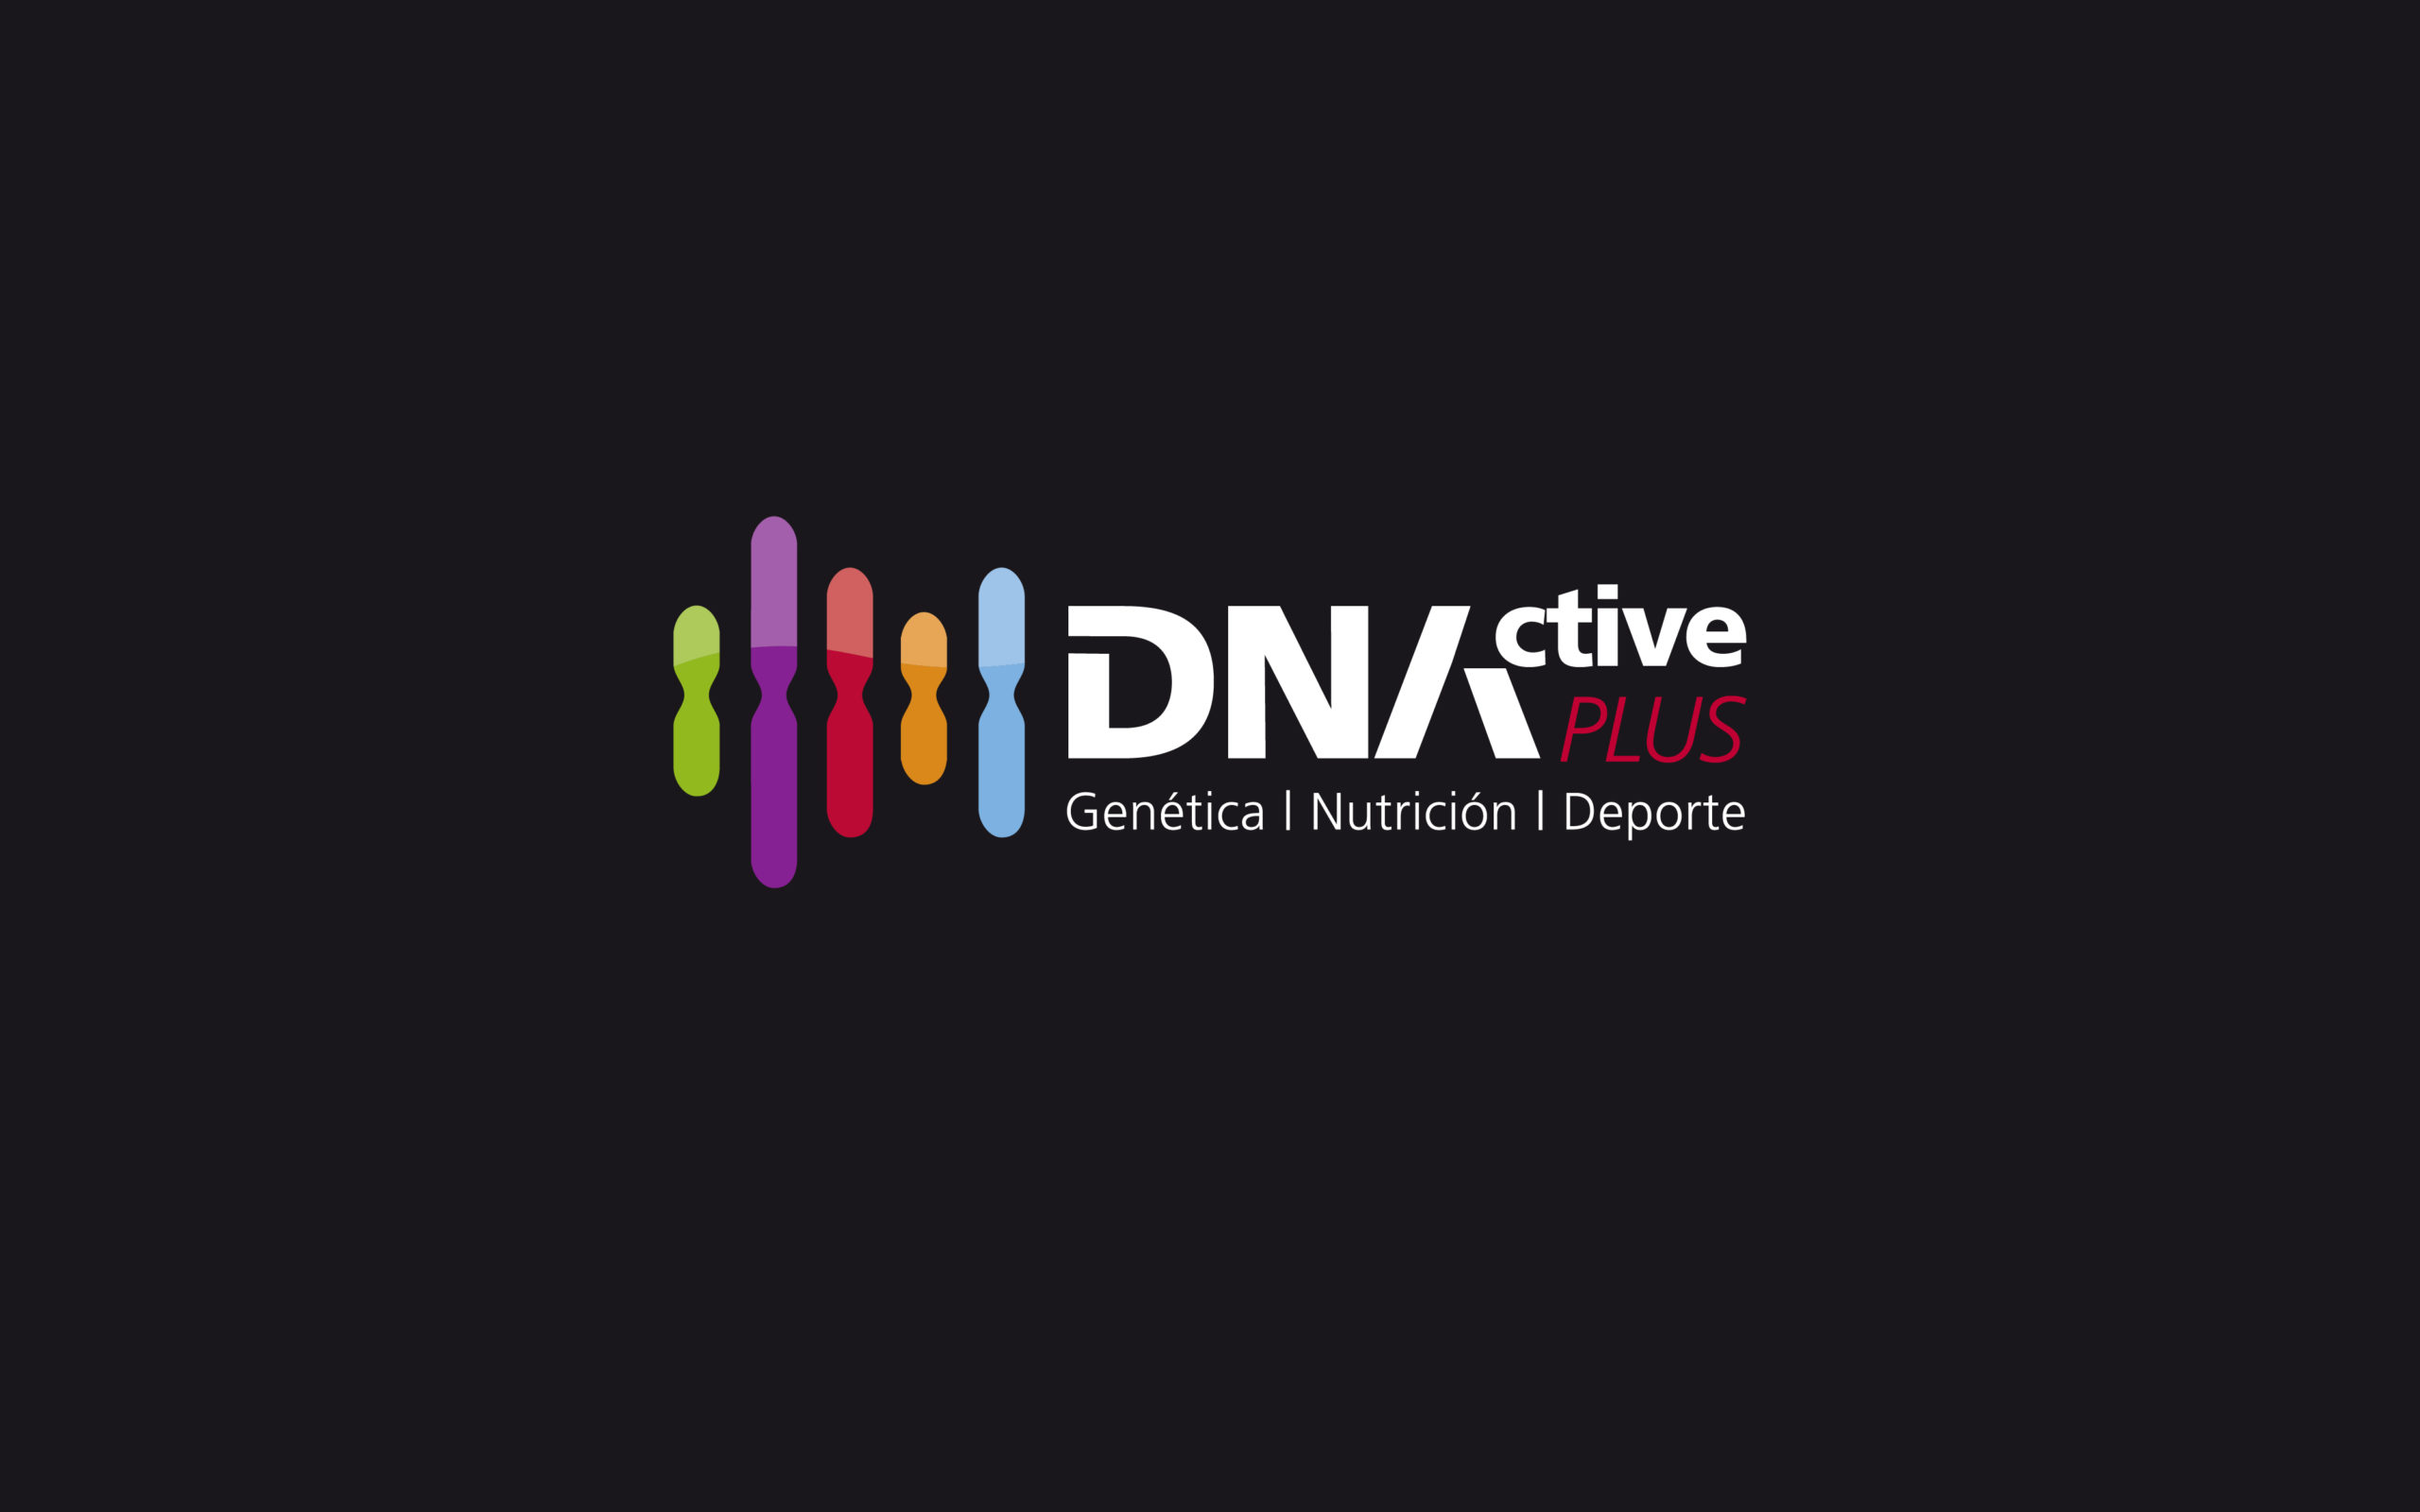 identidad-corporativa-branding-dn-active-plus-02